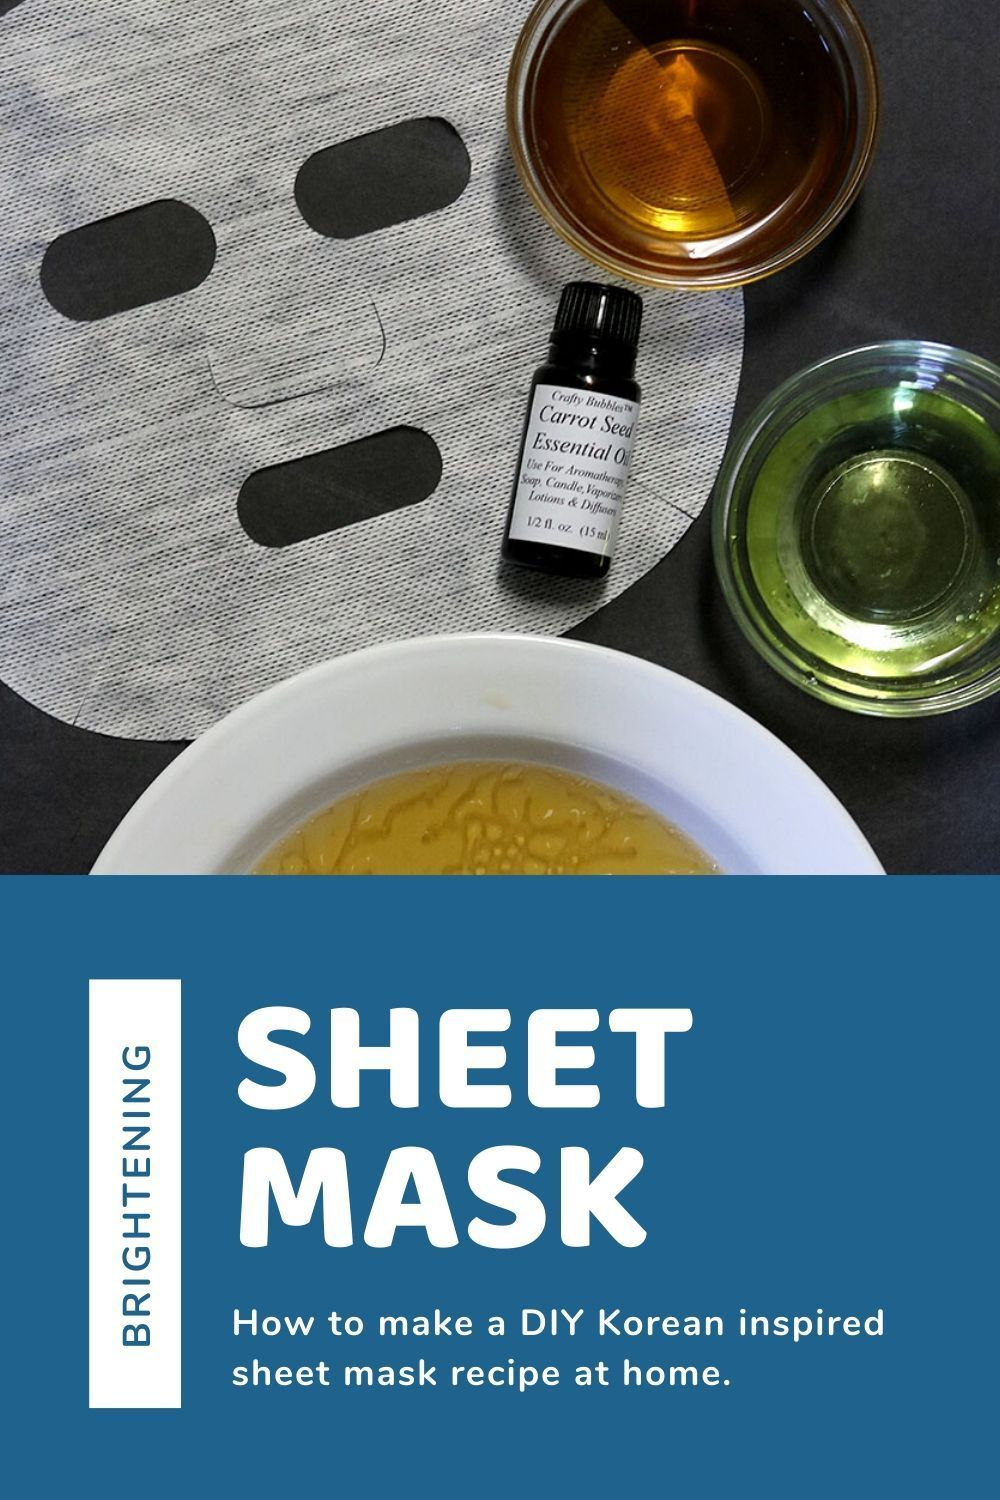 Photo of DIY Brightening Sheet Mask Recipe for the Face